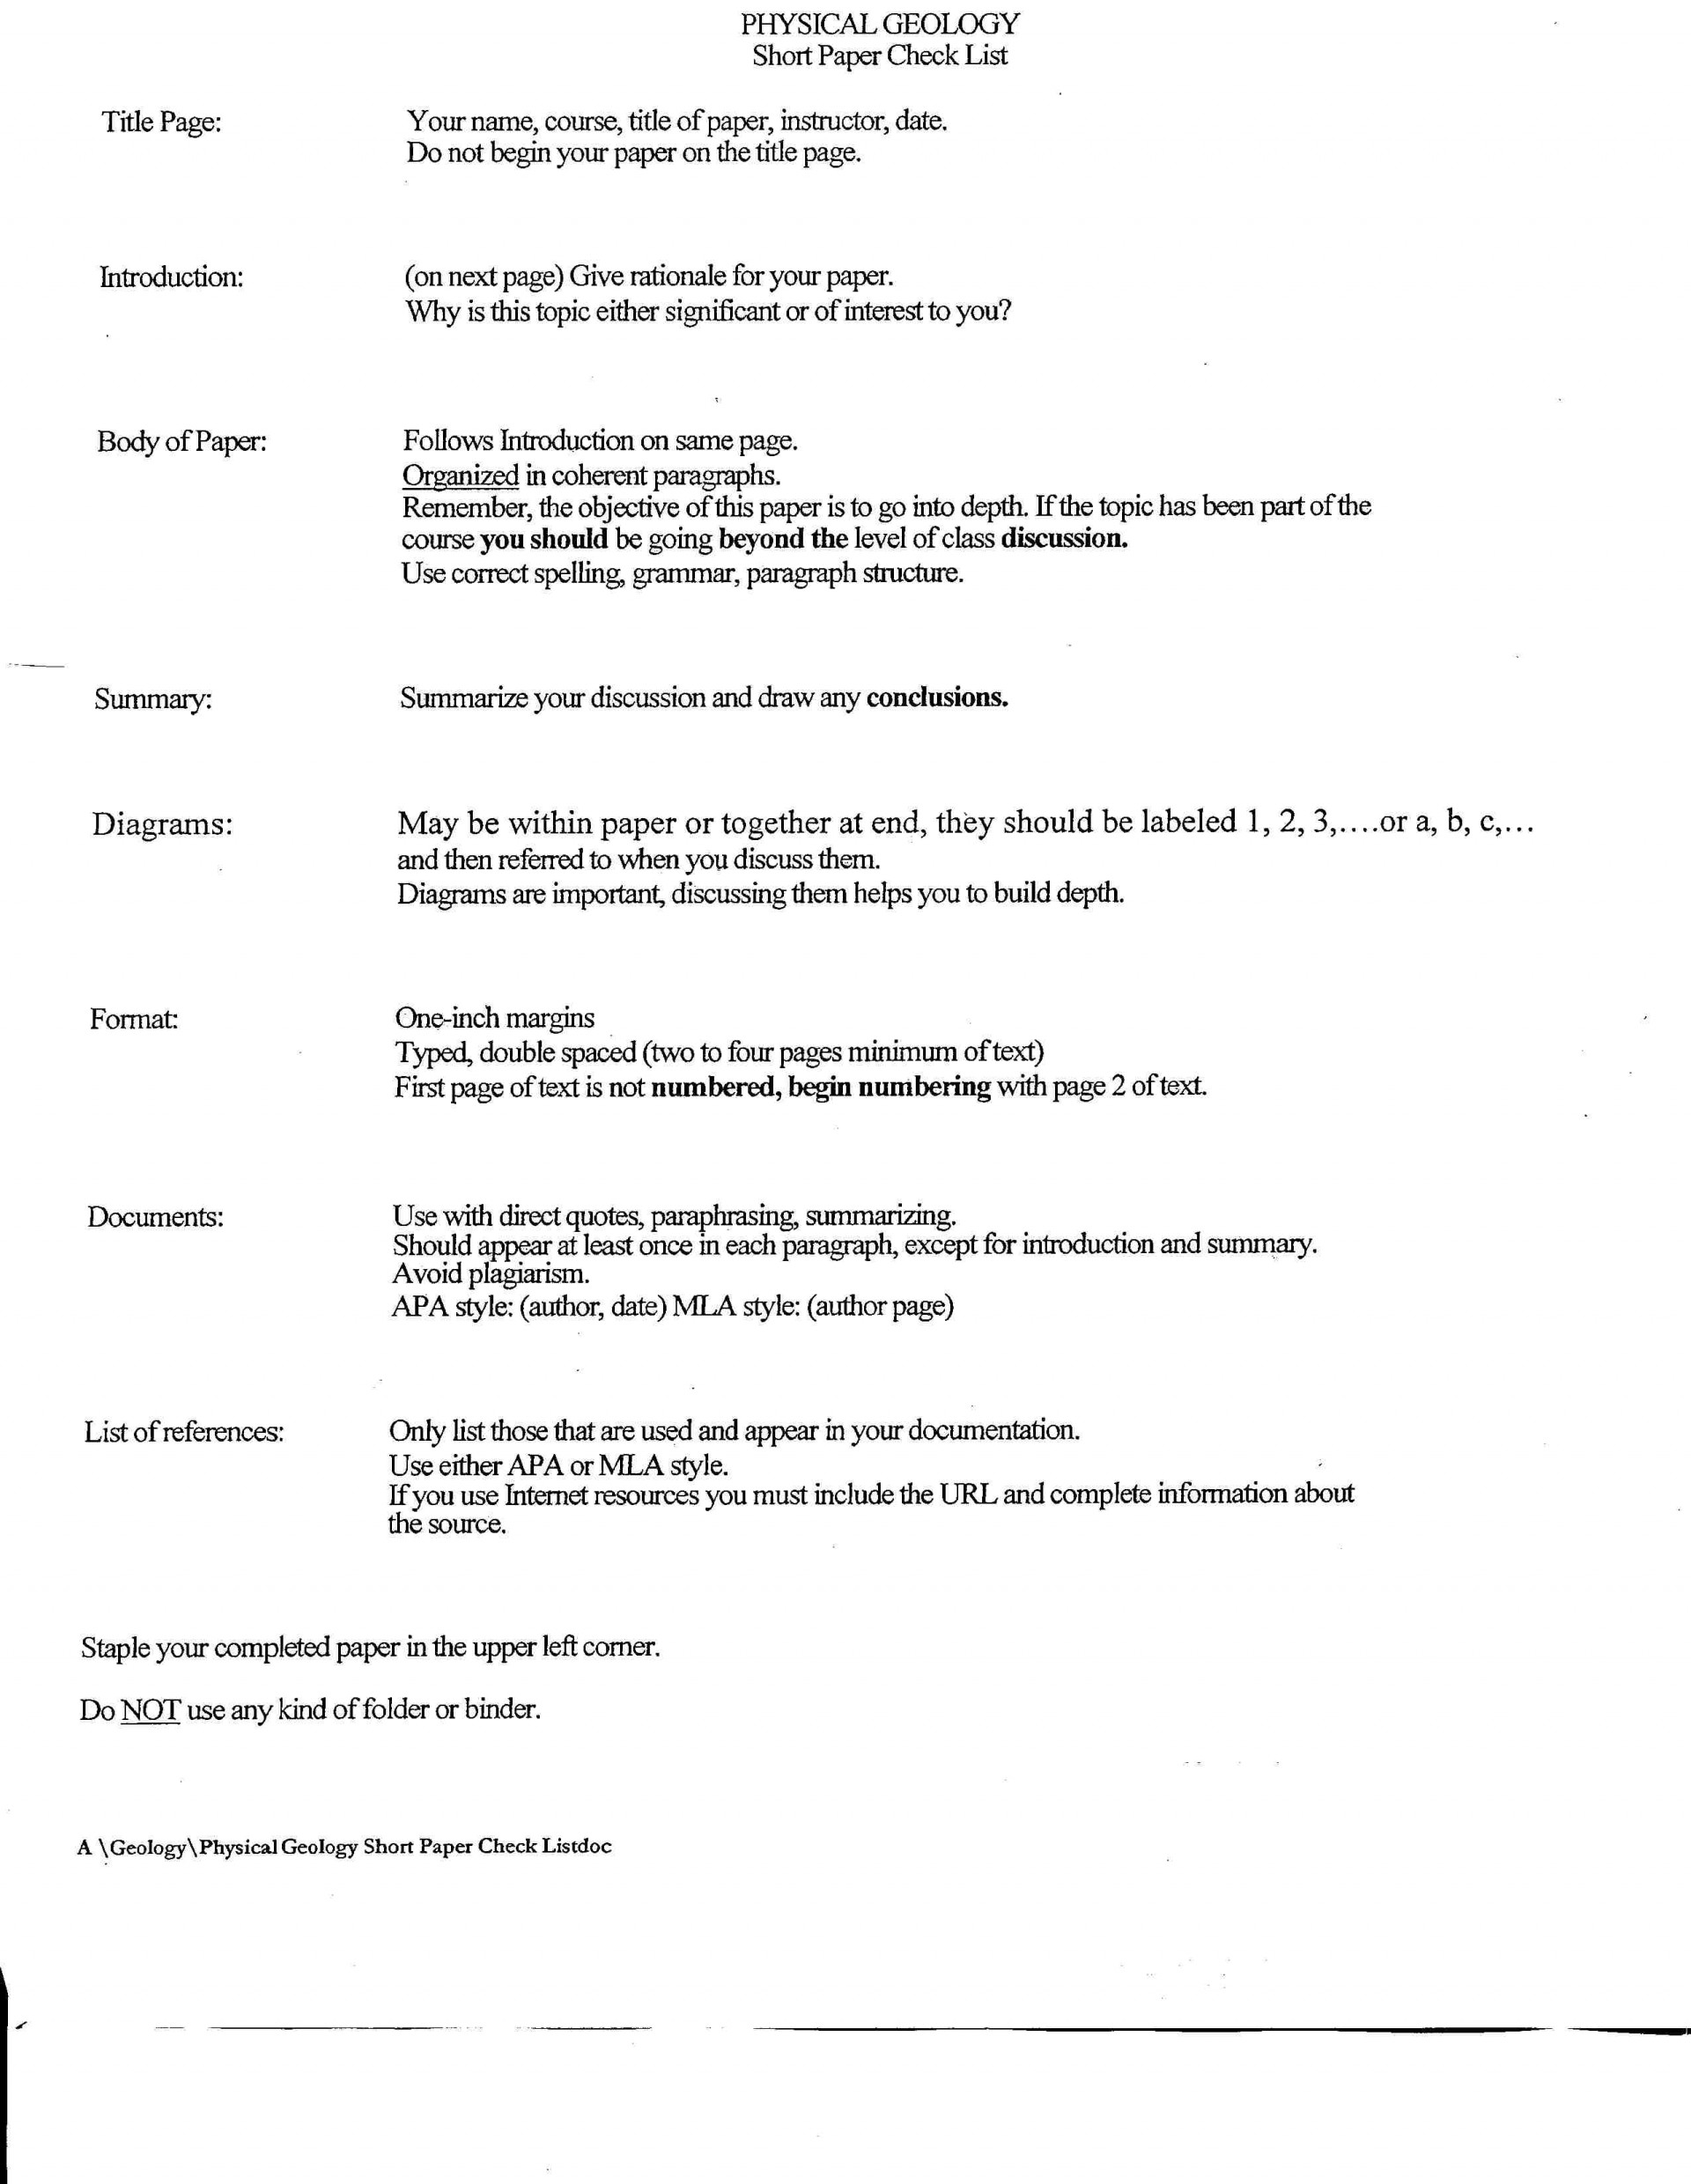 003 Research Paper Short Checklist Interesting Topics For Rare College Students In The Philippines History Technology 1920